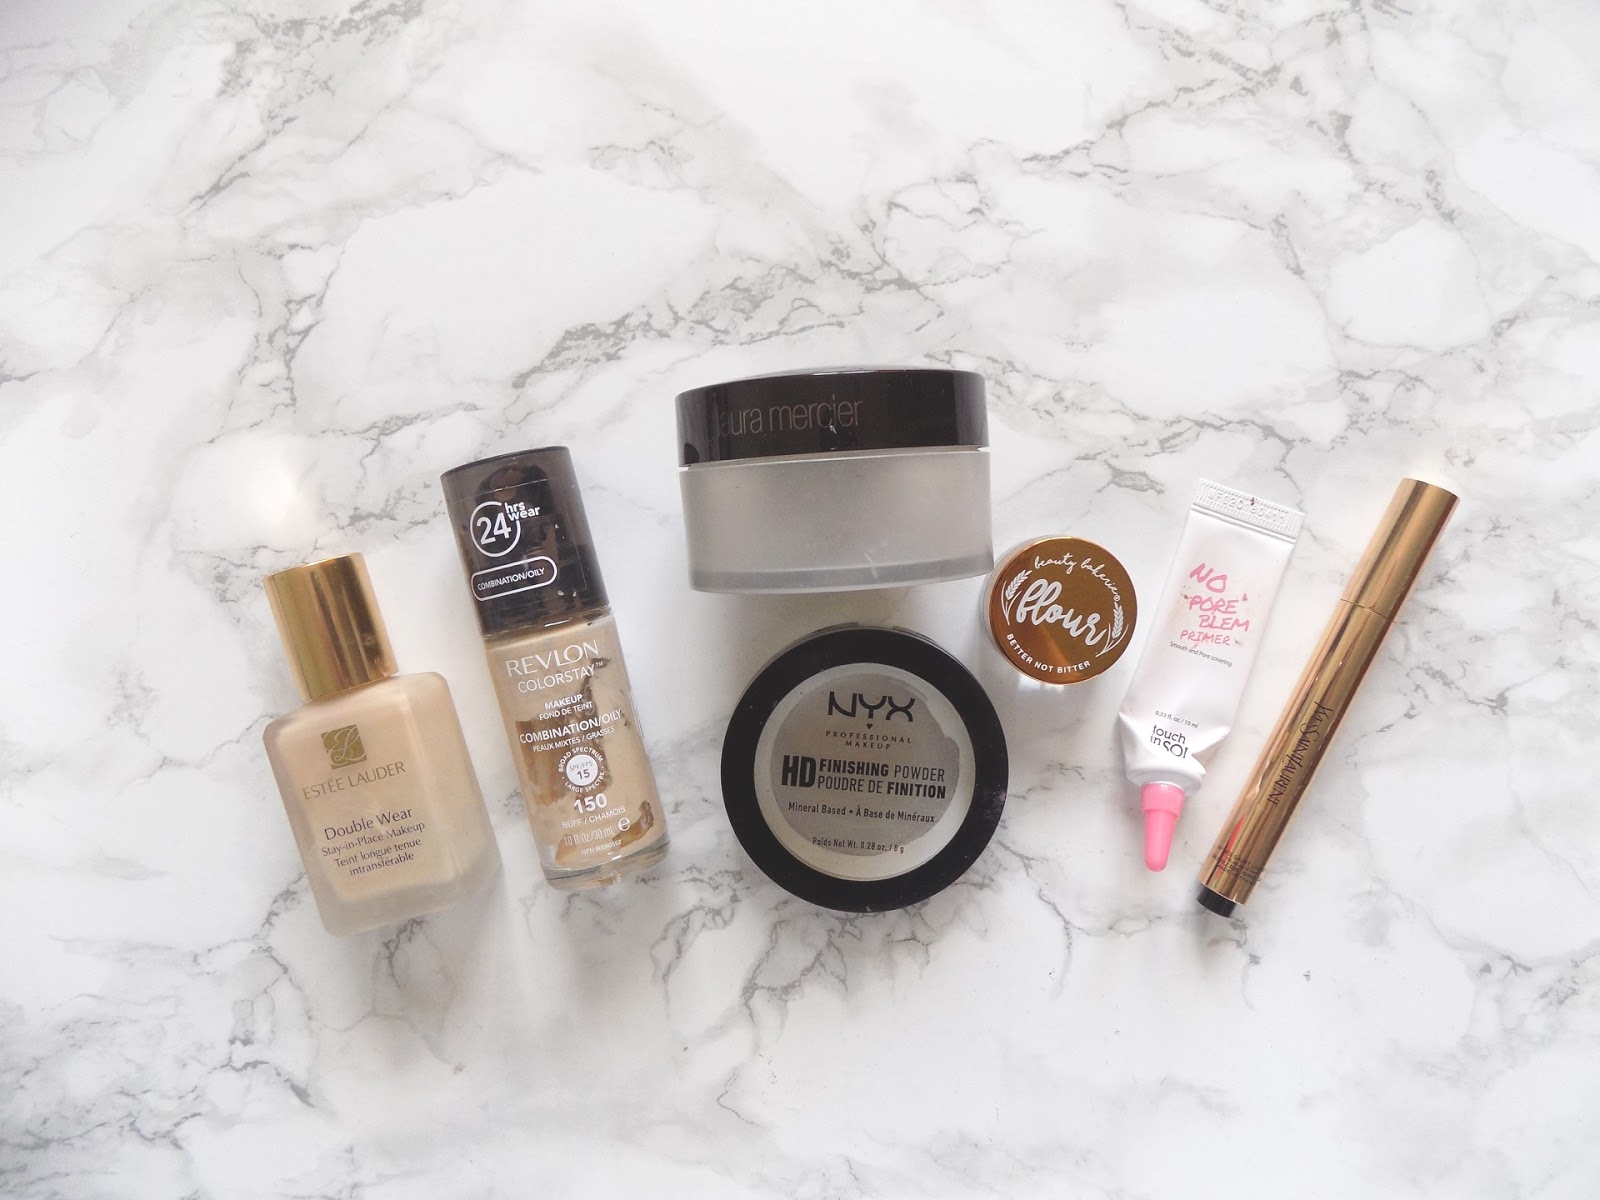 makeup empties Estée Lauder Laura mercier revlon review